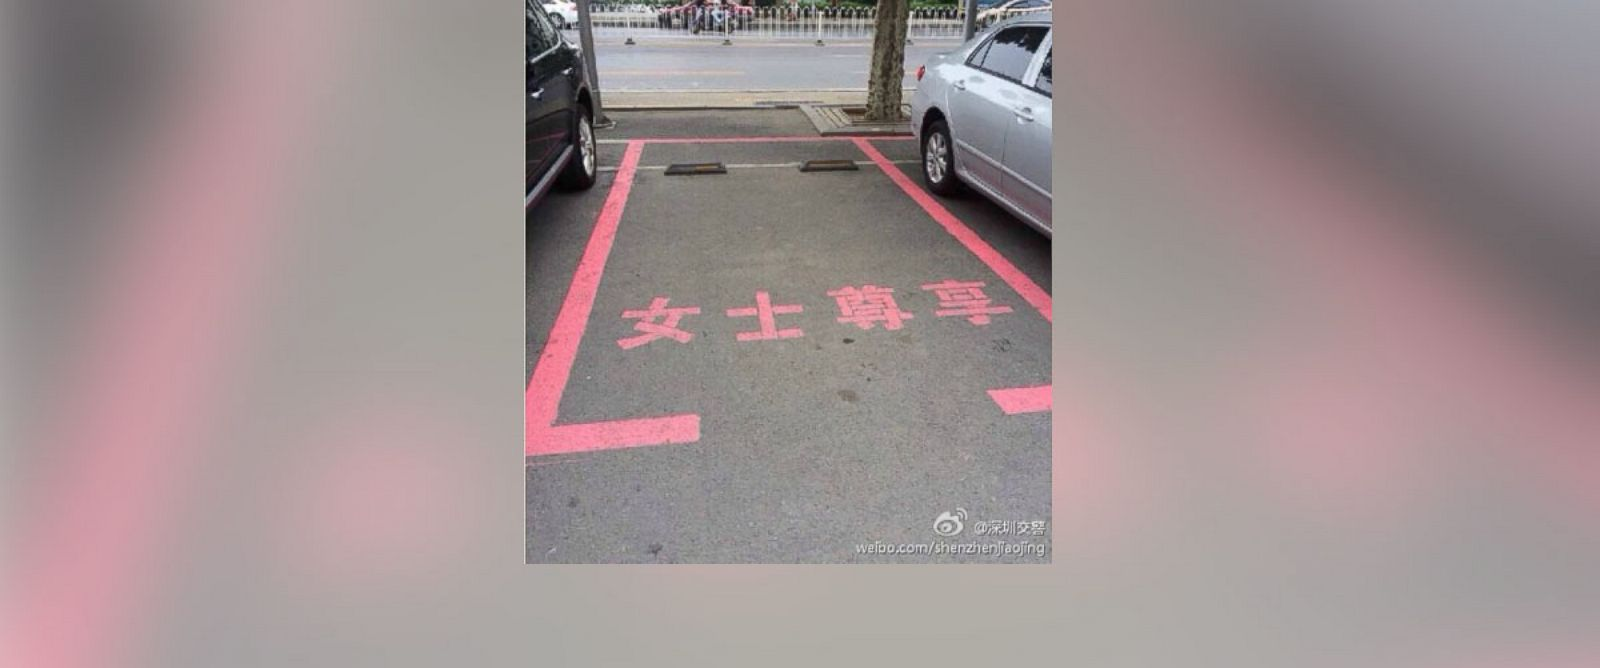 PHOTO: This undated Shenzhen Police Department photo posted to Weibo shows pink, woman-only, parking spots that are 11 inches wider than the standard parking spots in Shenzhen, China.